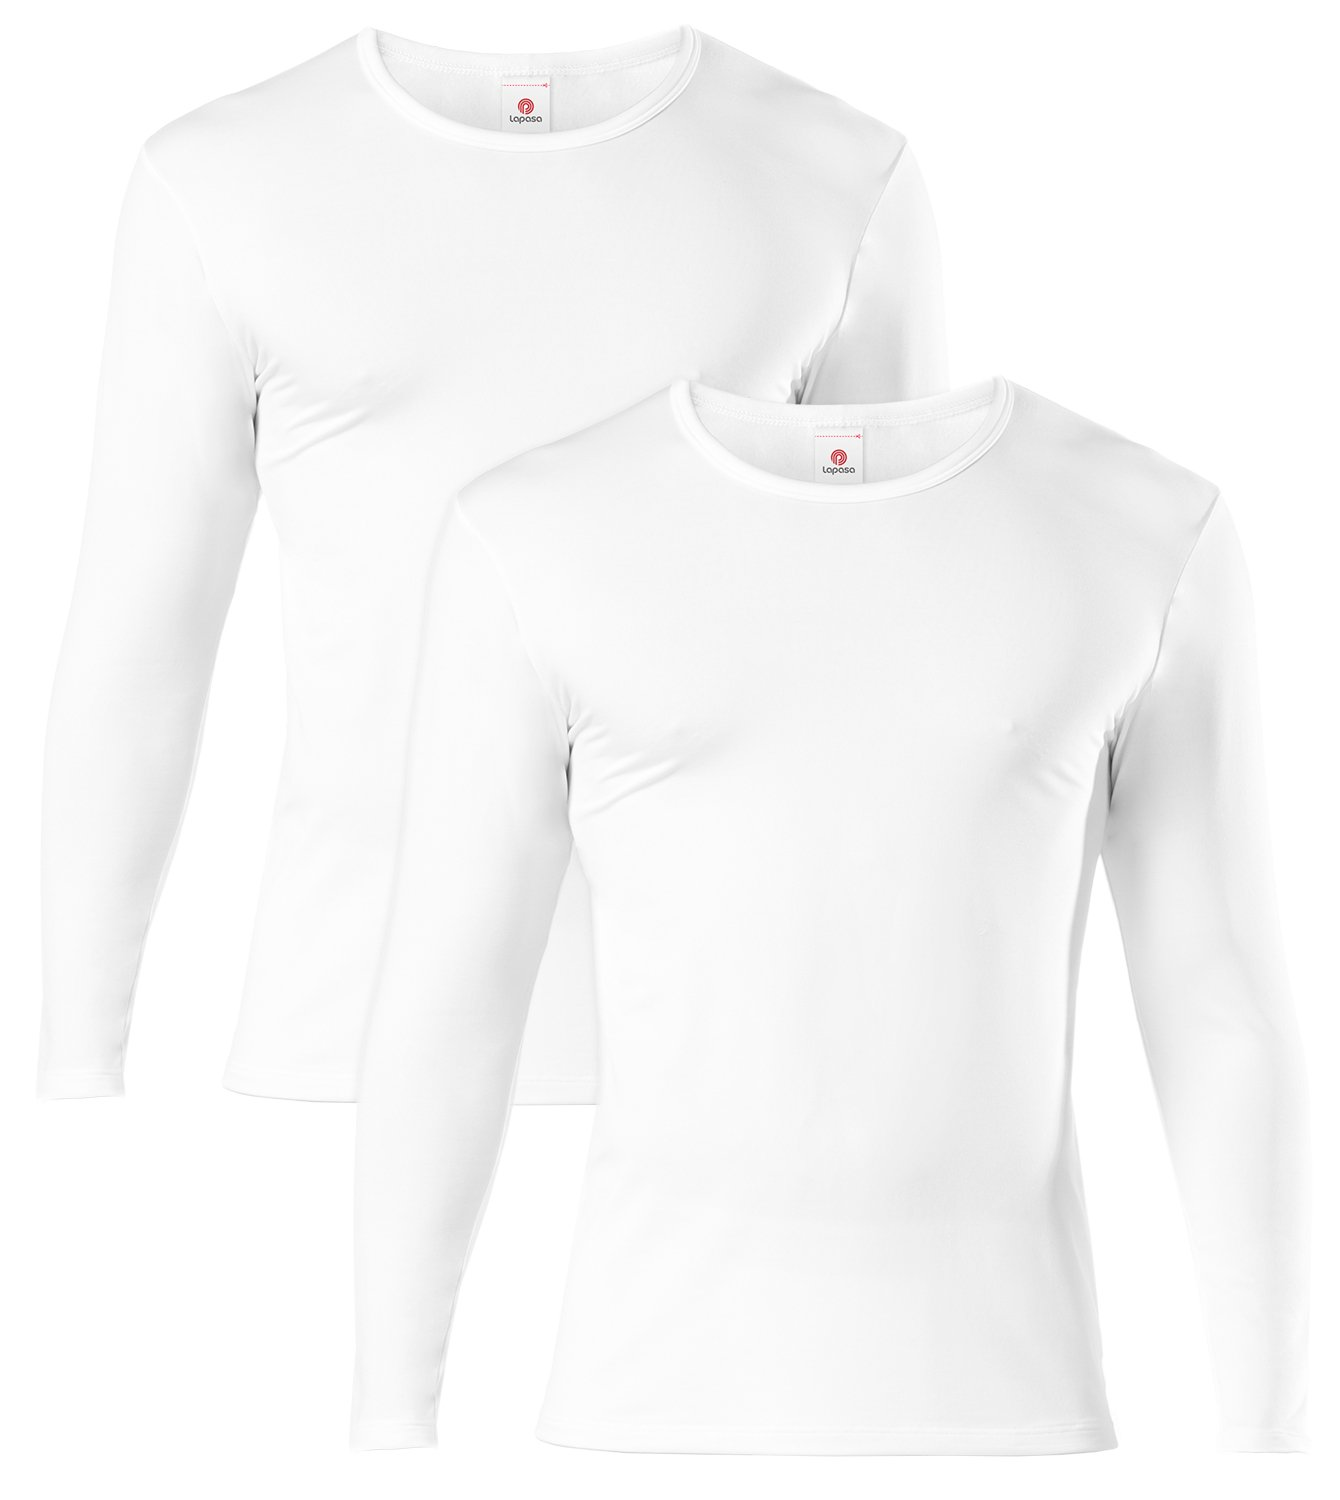 LAPASA Men's Lightweight Thermal Underwear Tops Fleece Lined Base Layer Long Sleeve Shirts 2 Pack M09 (Large, White) by LAPASA